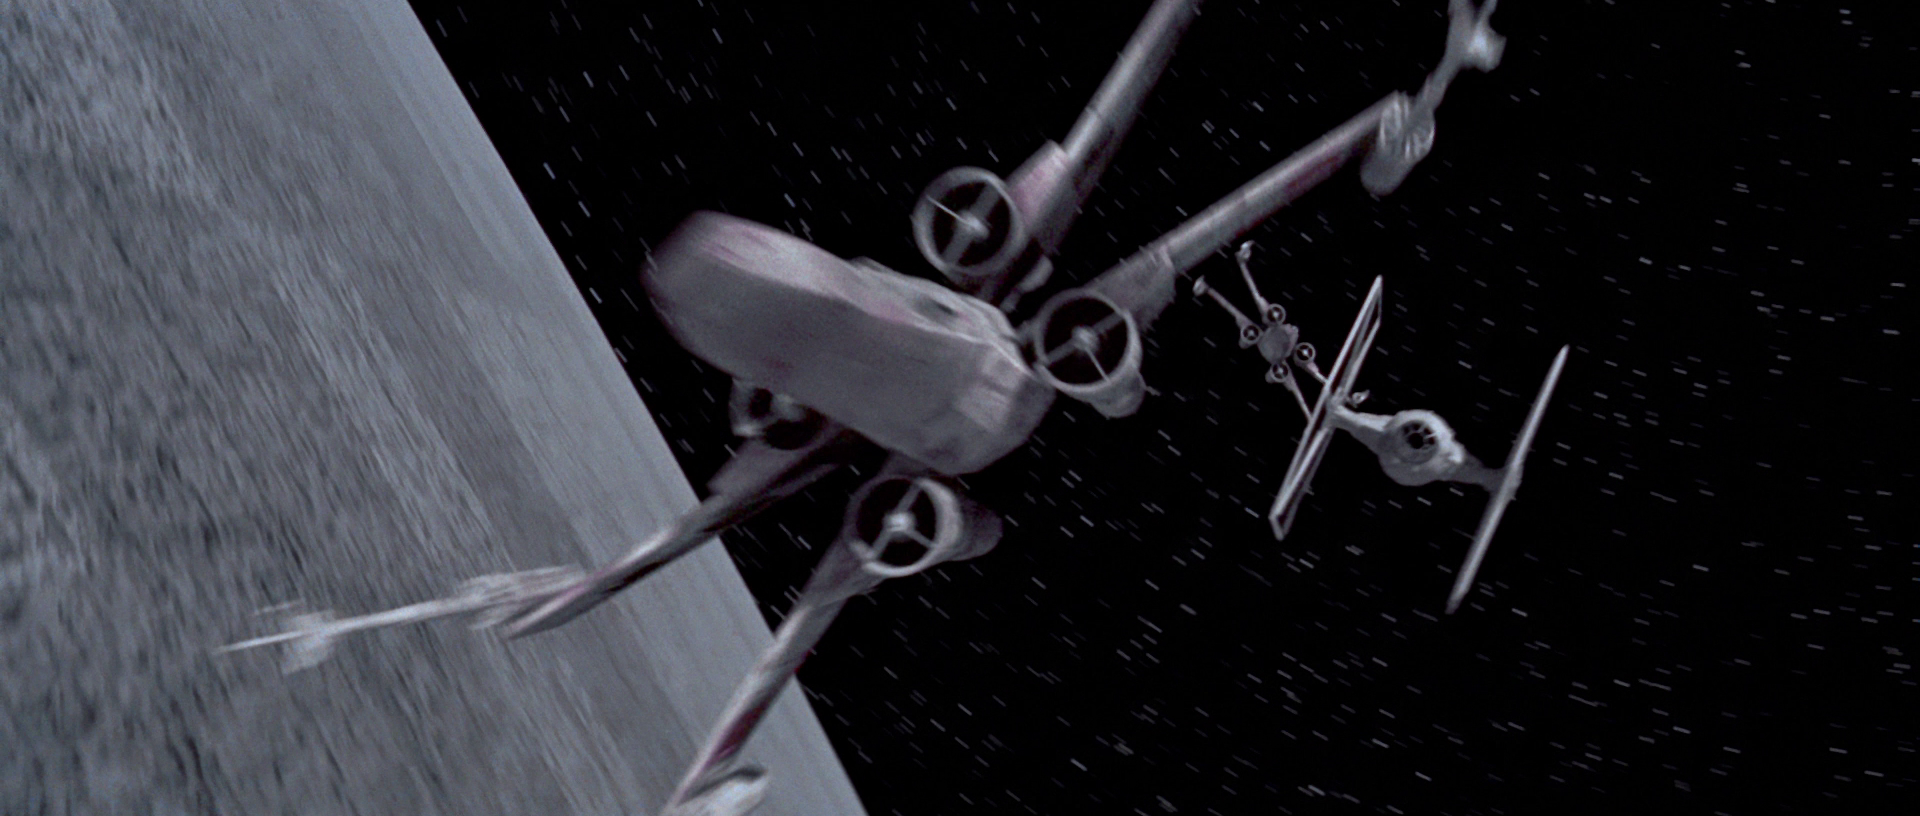 http://vignette4.wikia.nocookie.net/starwars/images/9/97/Yavin_dogfight.png/revision/latest?cb=20150108233707